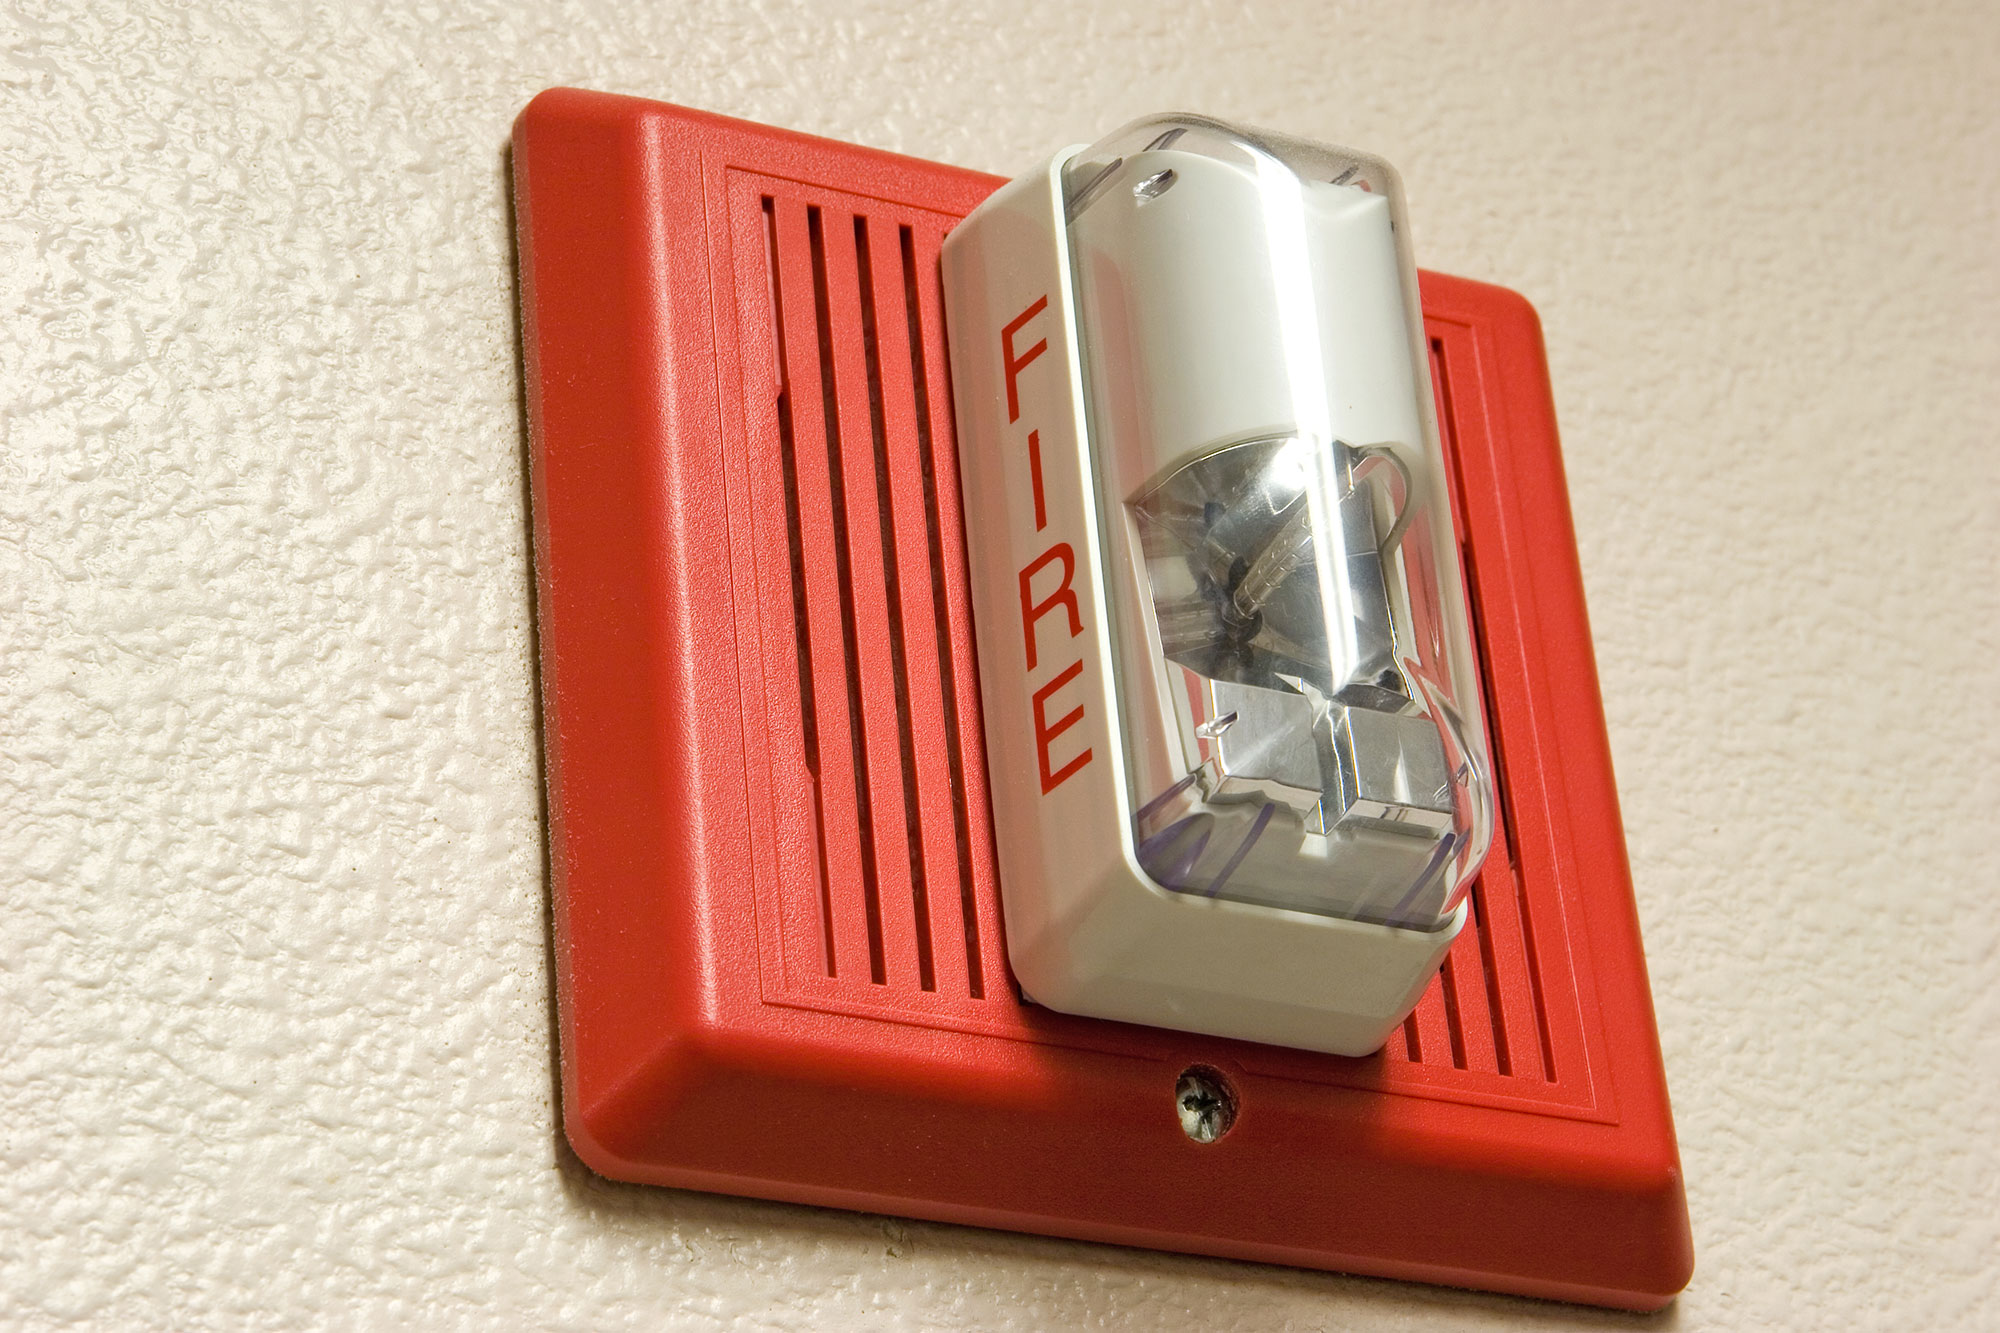 Testing & Maintenance - Fire Alarm Testing & Inspection - Sprinkler ...